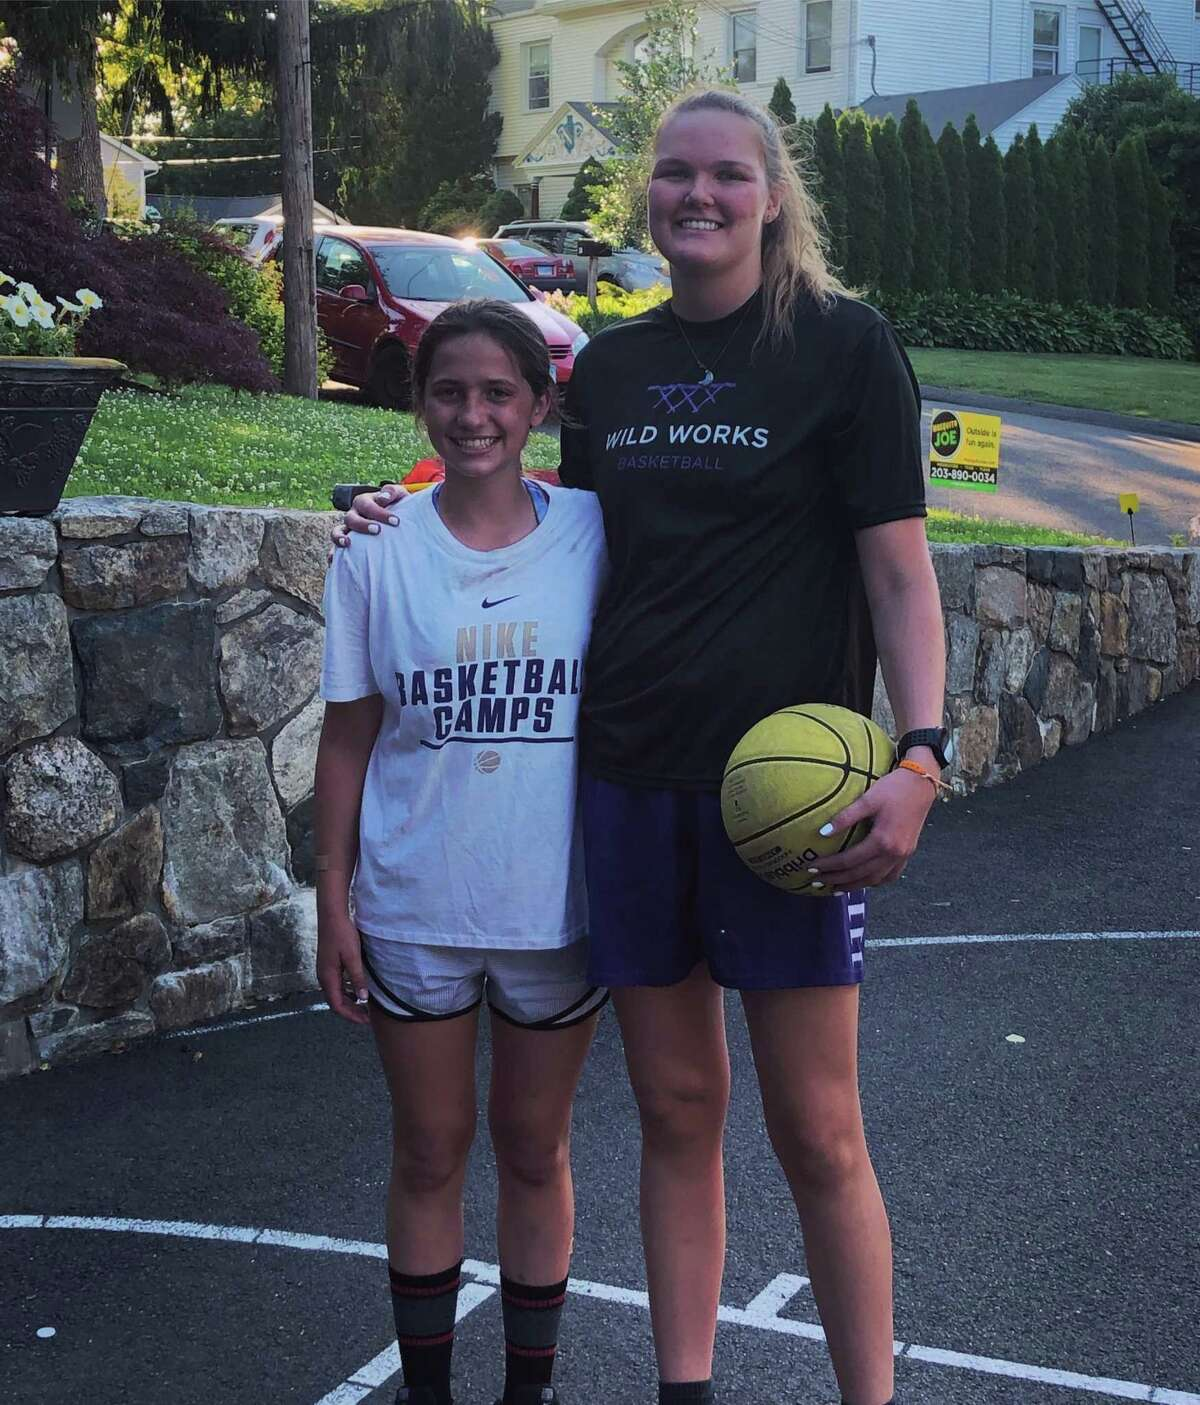 Abbie Wolf has been doing individual training with players in Greenwich. Madison Utzinger, a rising eighth grader at Western Middle School has been working with Wolf.